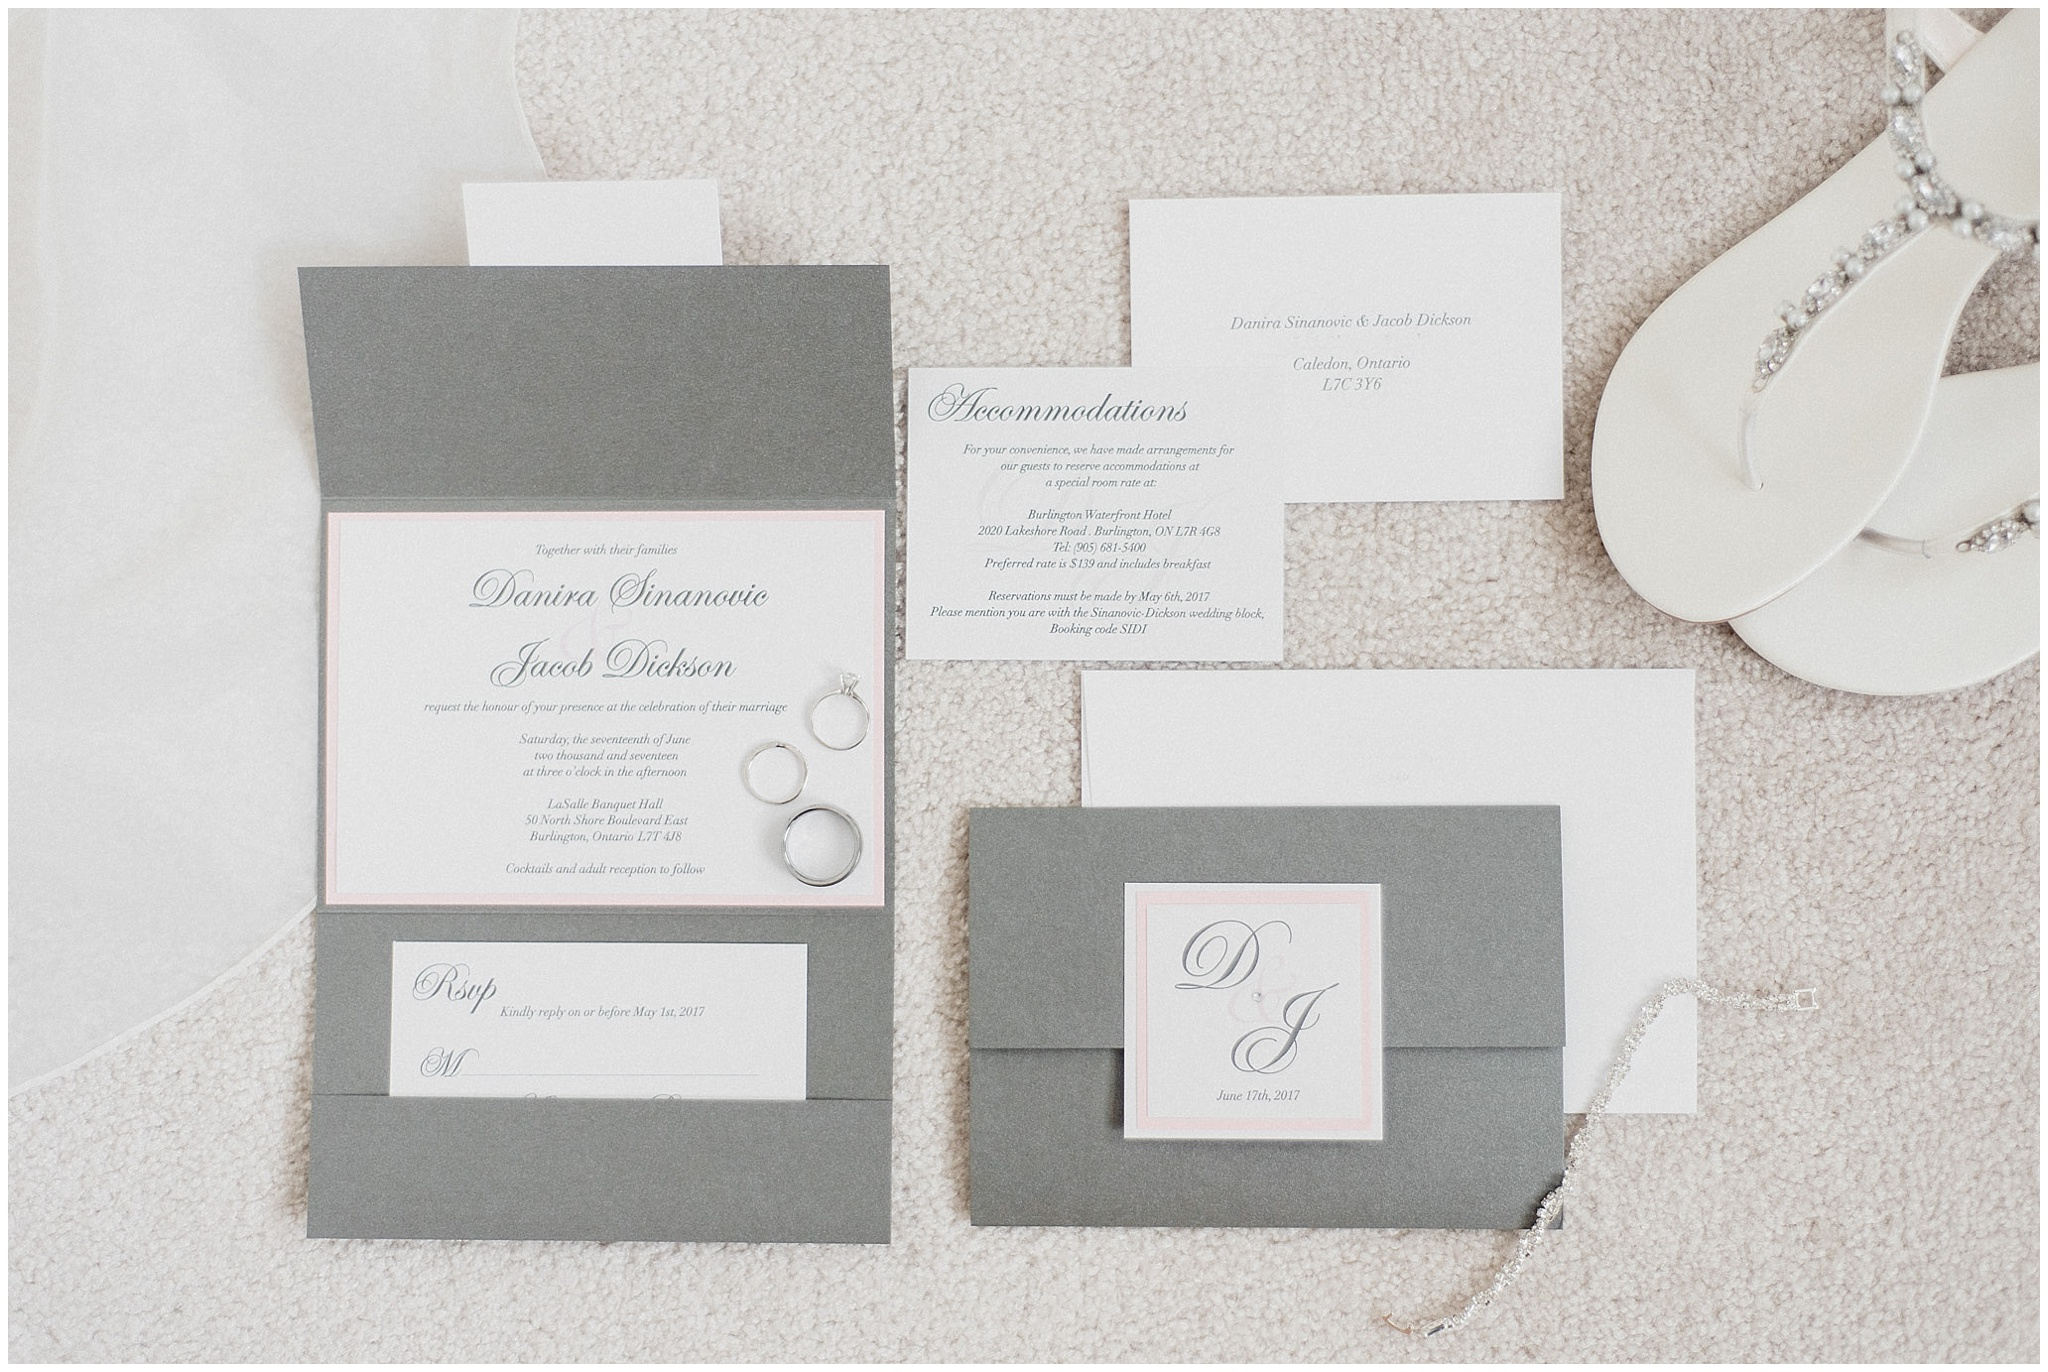 Pink and grey invitation suite by Jenn Kavanagh Photography